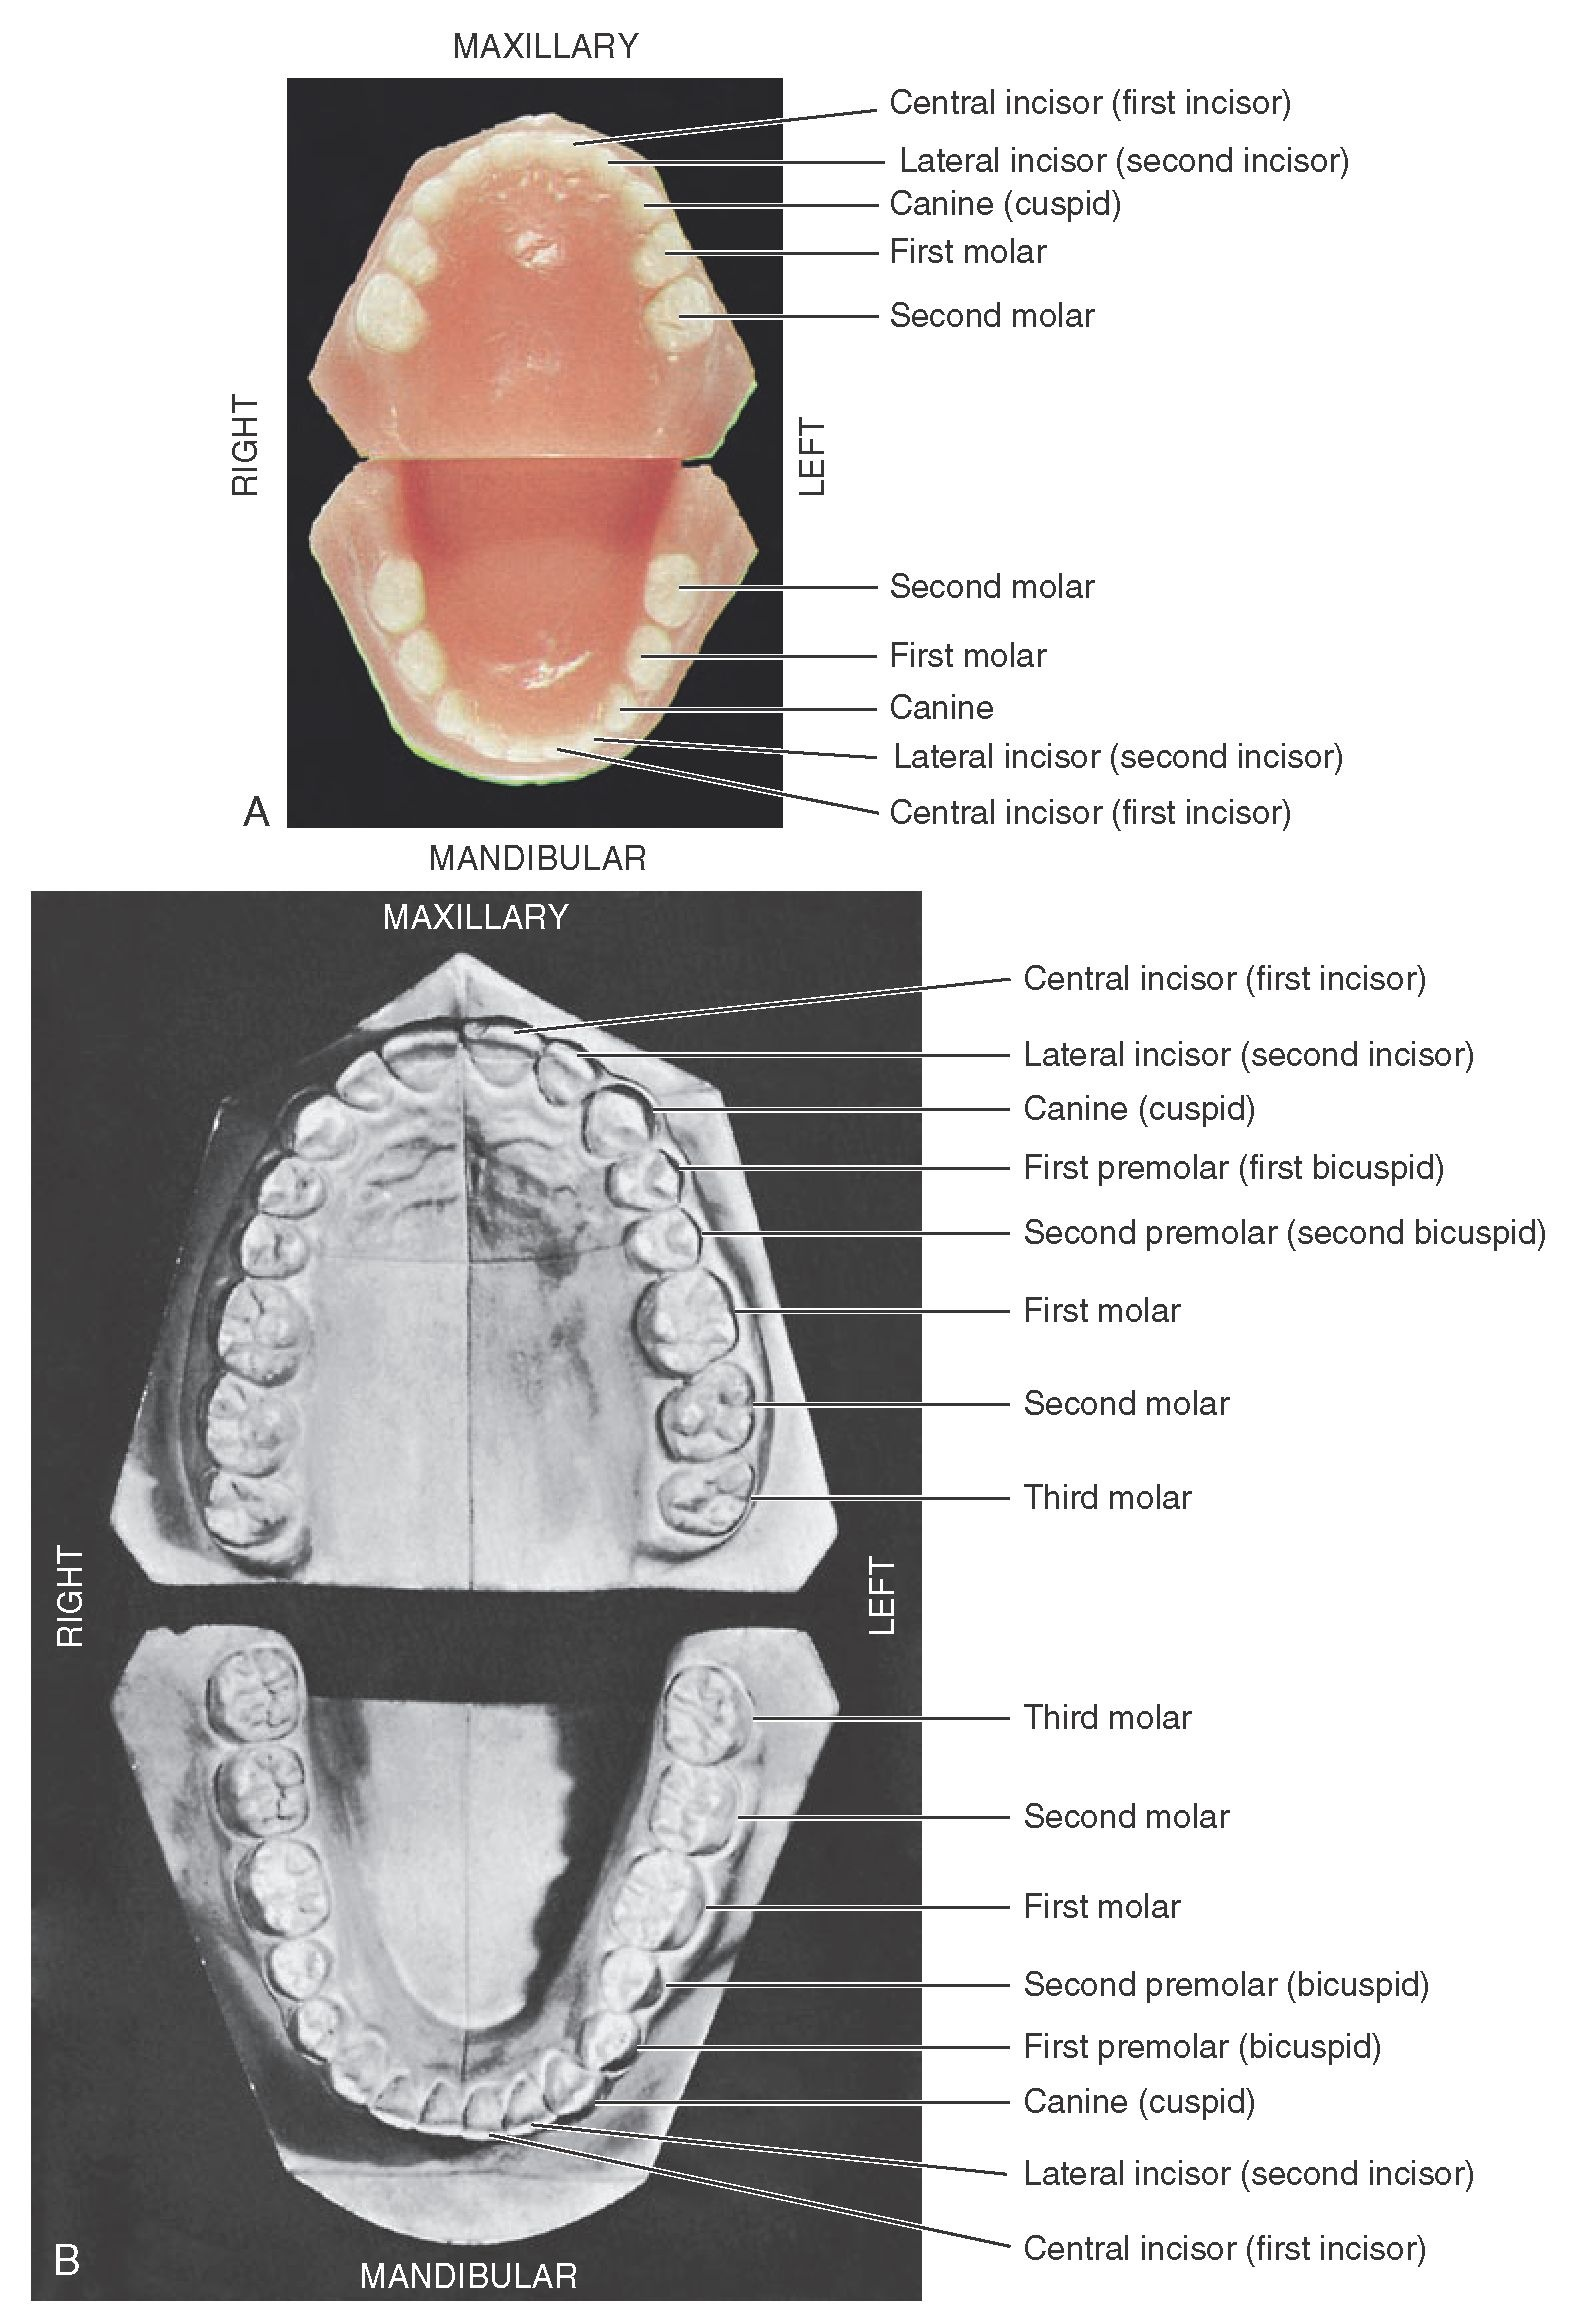 A, Casts of deciduous, or primary, dentition. B, Casts of permanent dentition.